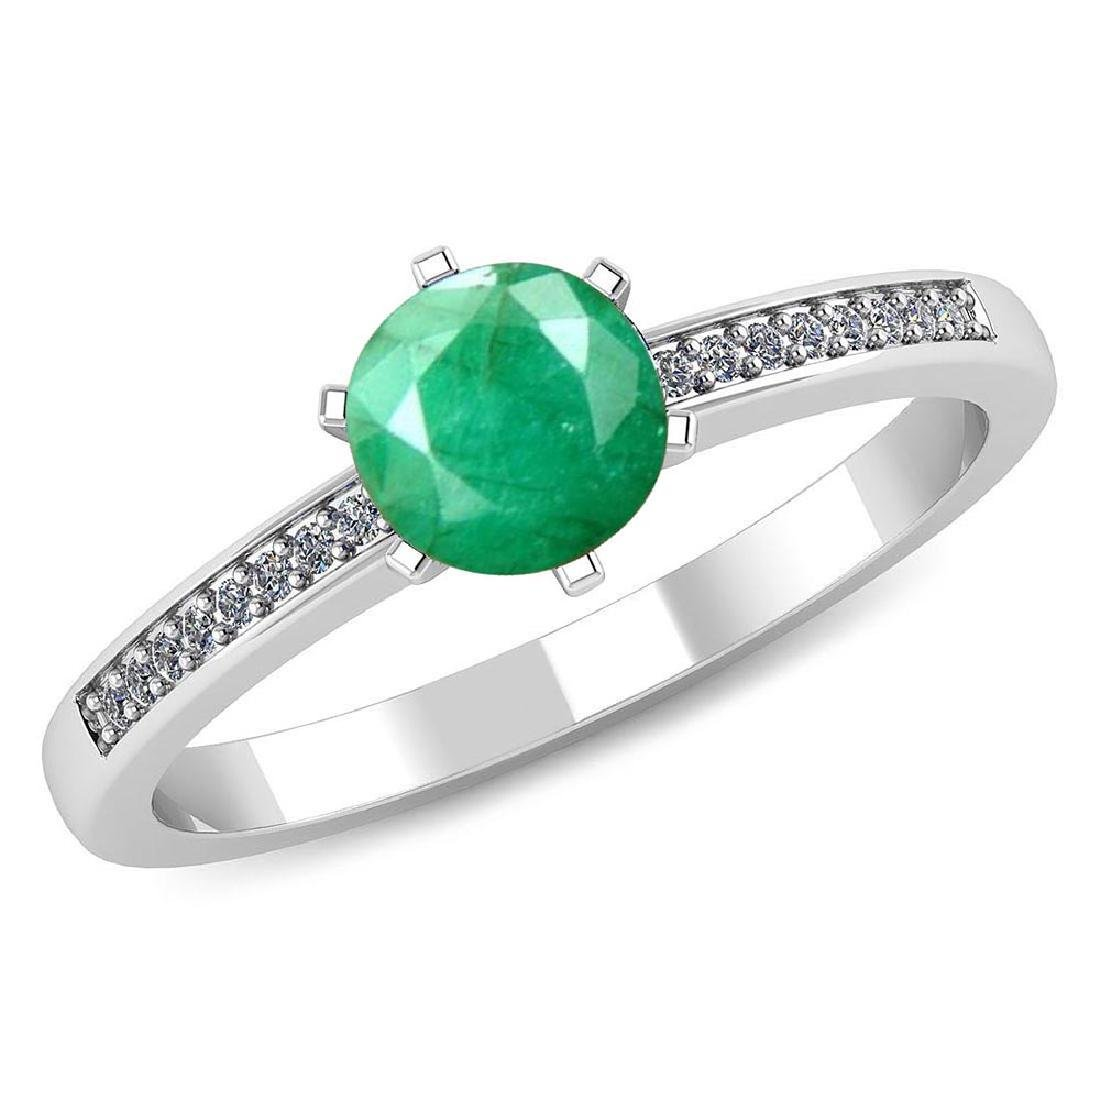 Certified 1.00 CTW Genuine Emerald And Diamond 14K Whit